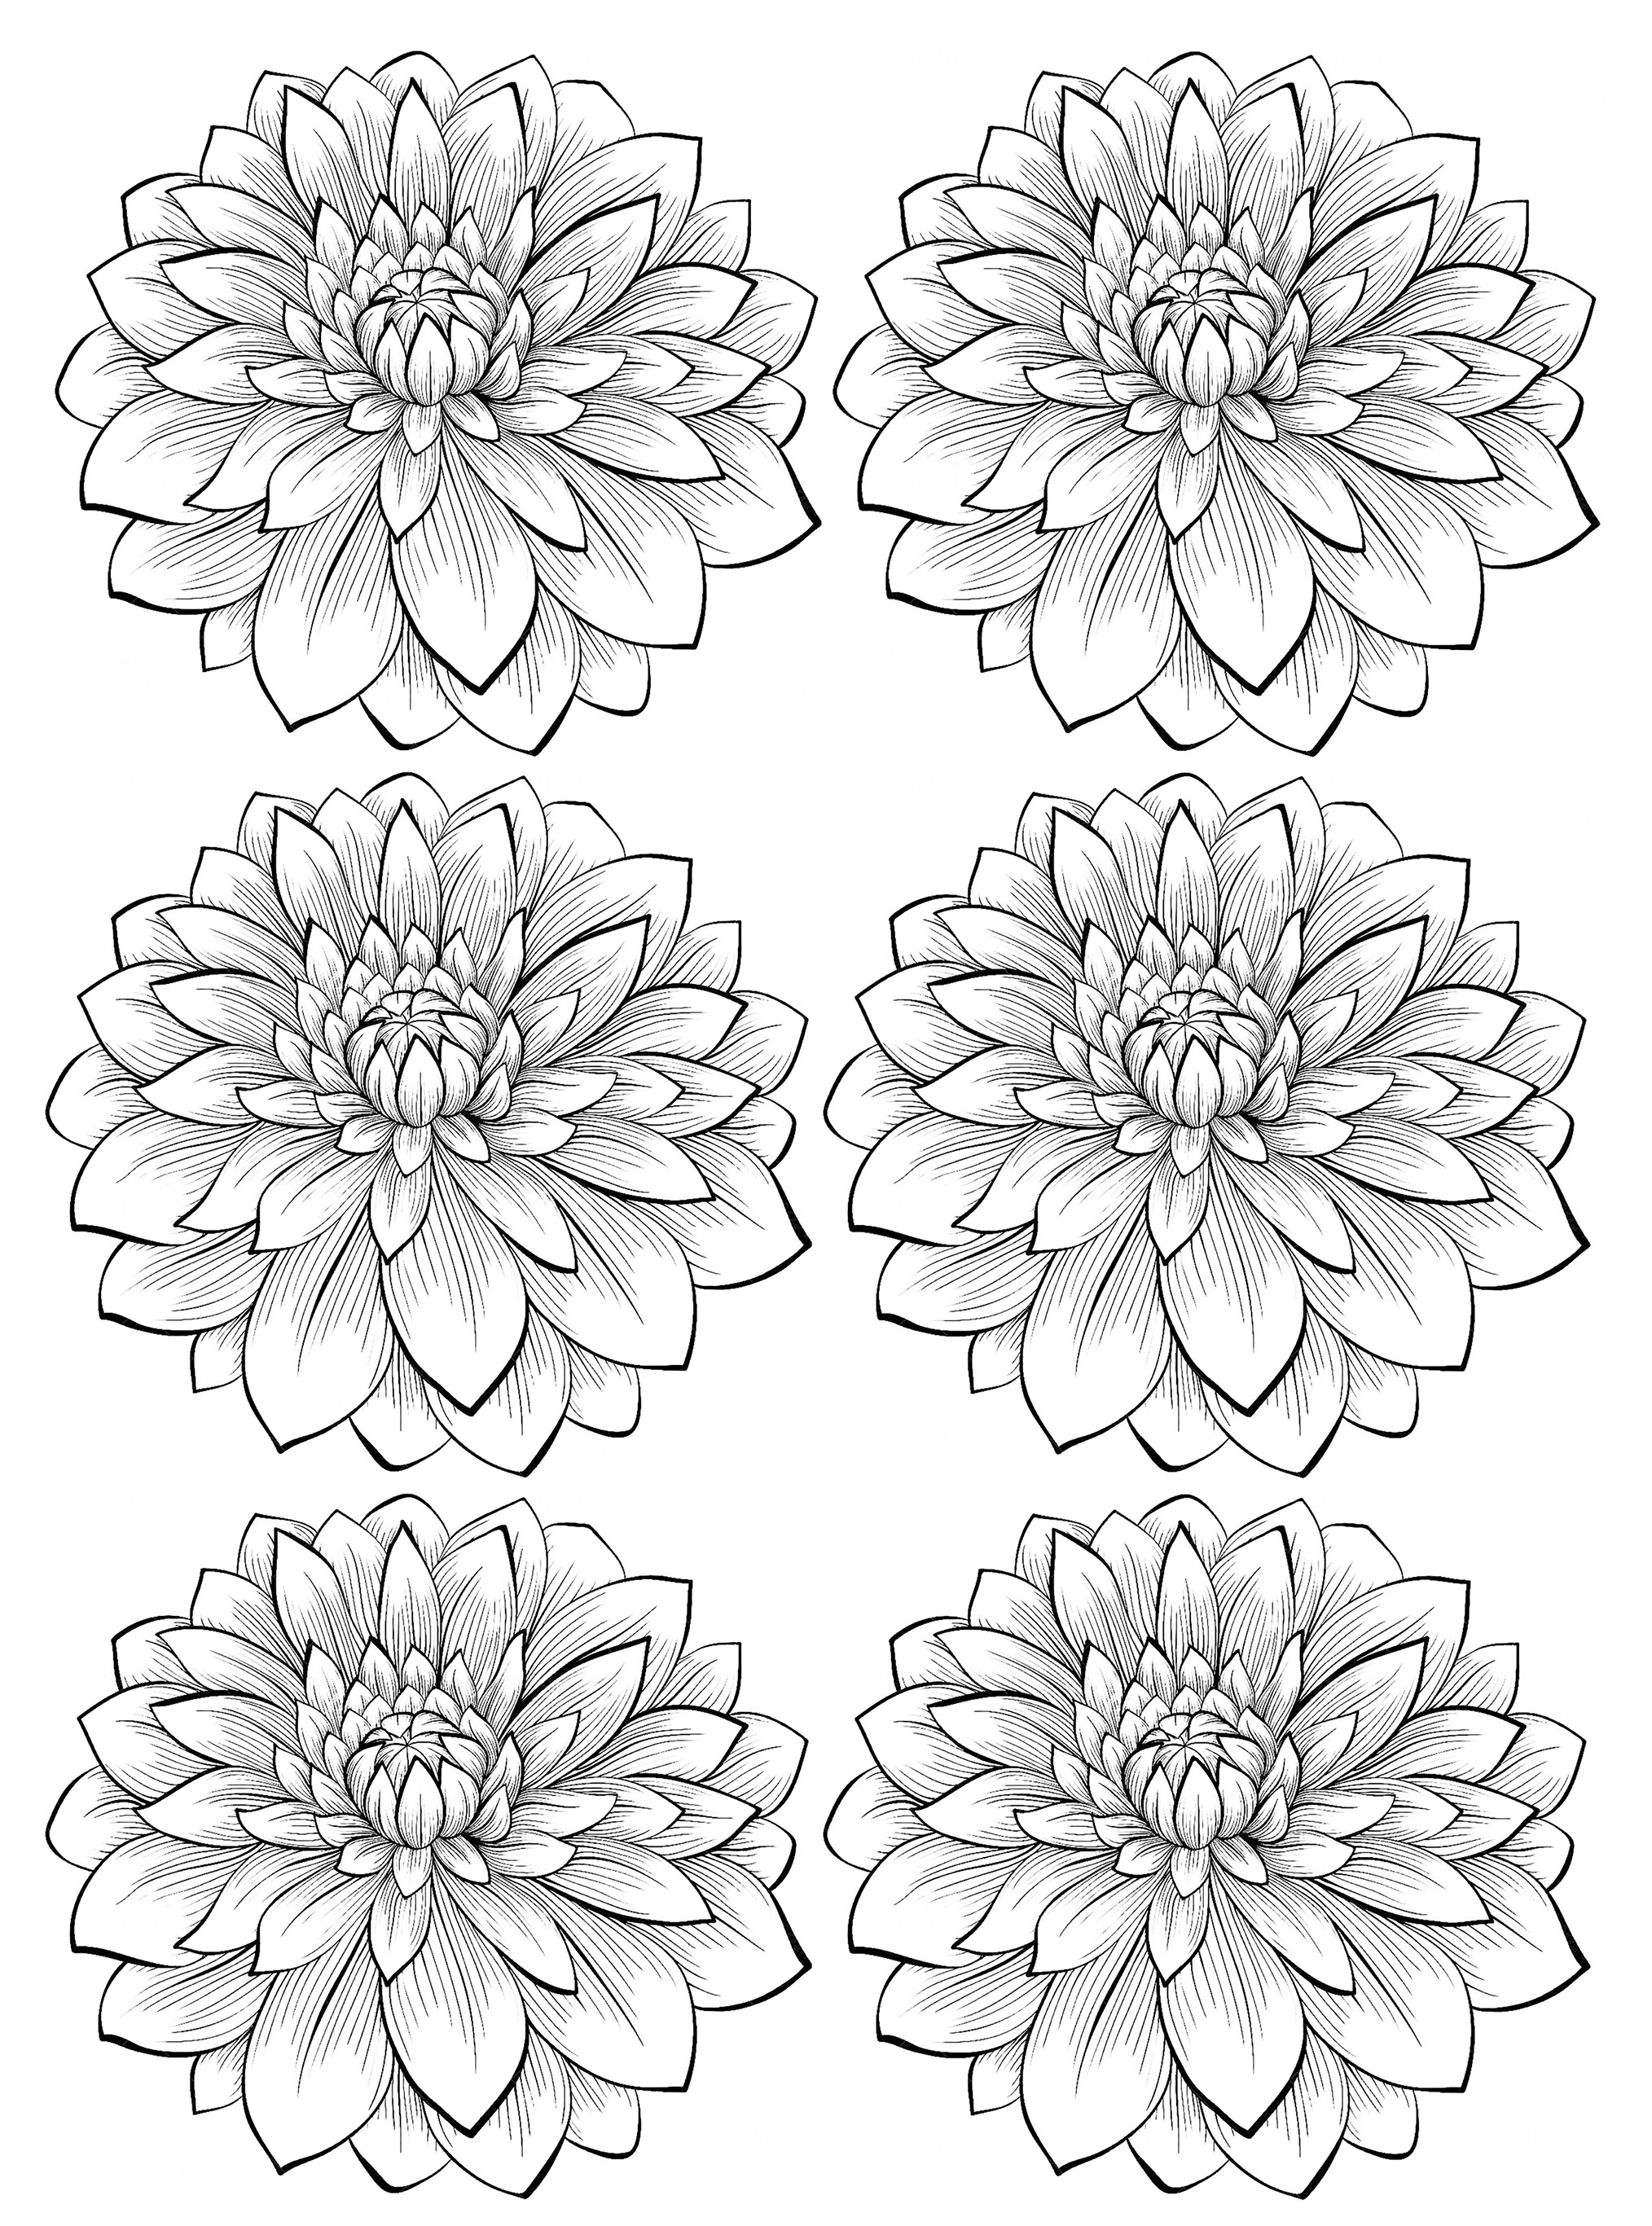 six dahlia flower flowers and vegetation coloring pages for